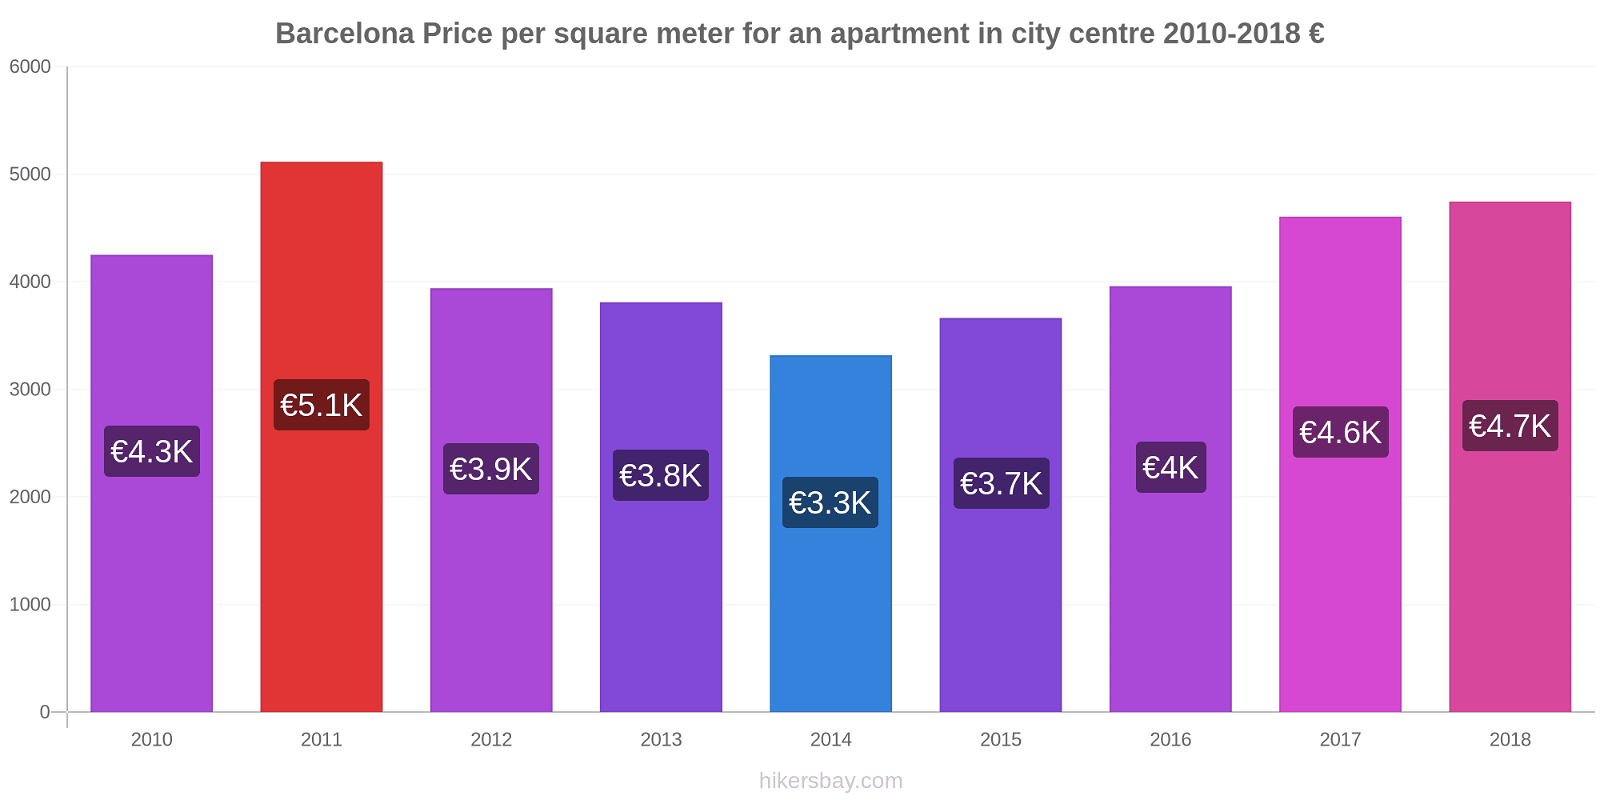 Barcelona price changes Price per square meter for an apartment in city centre hikersbay.com